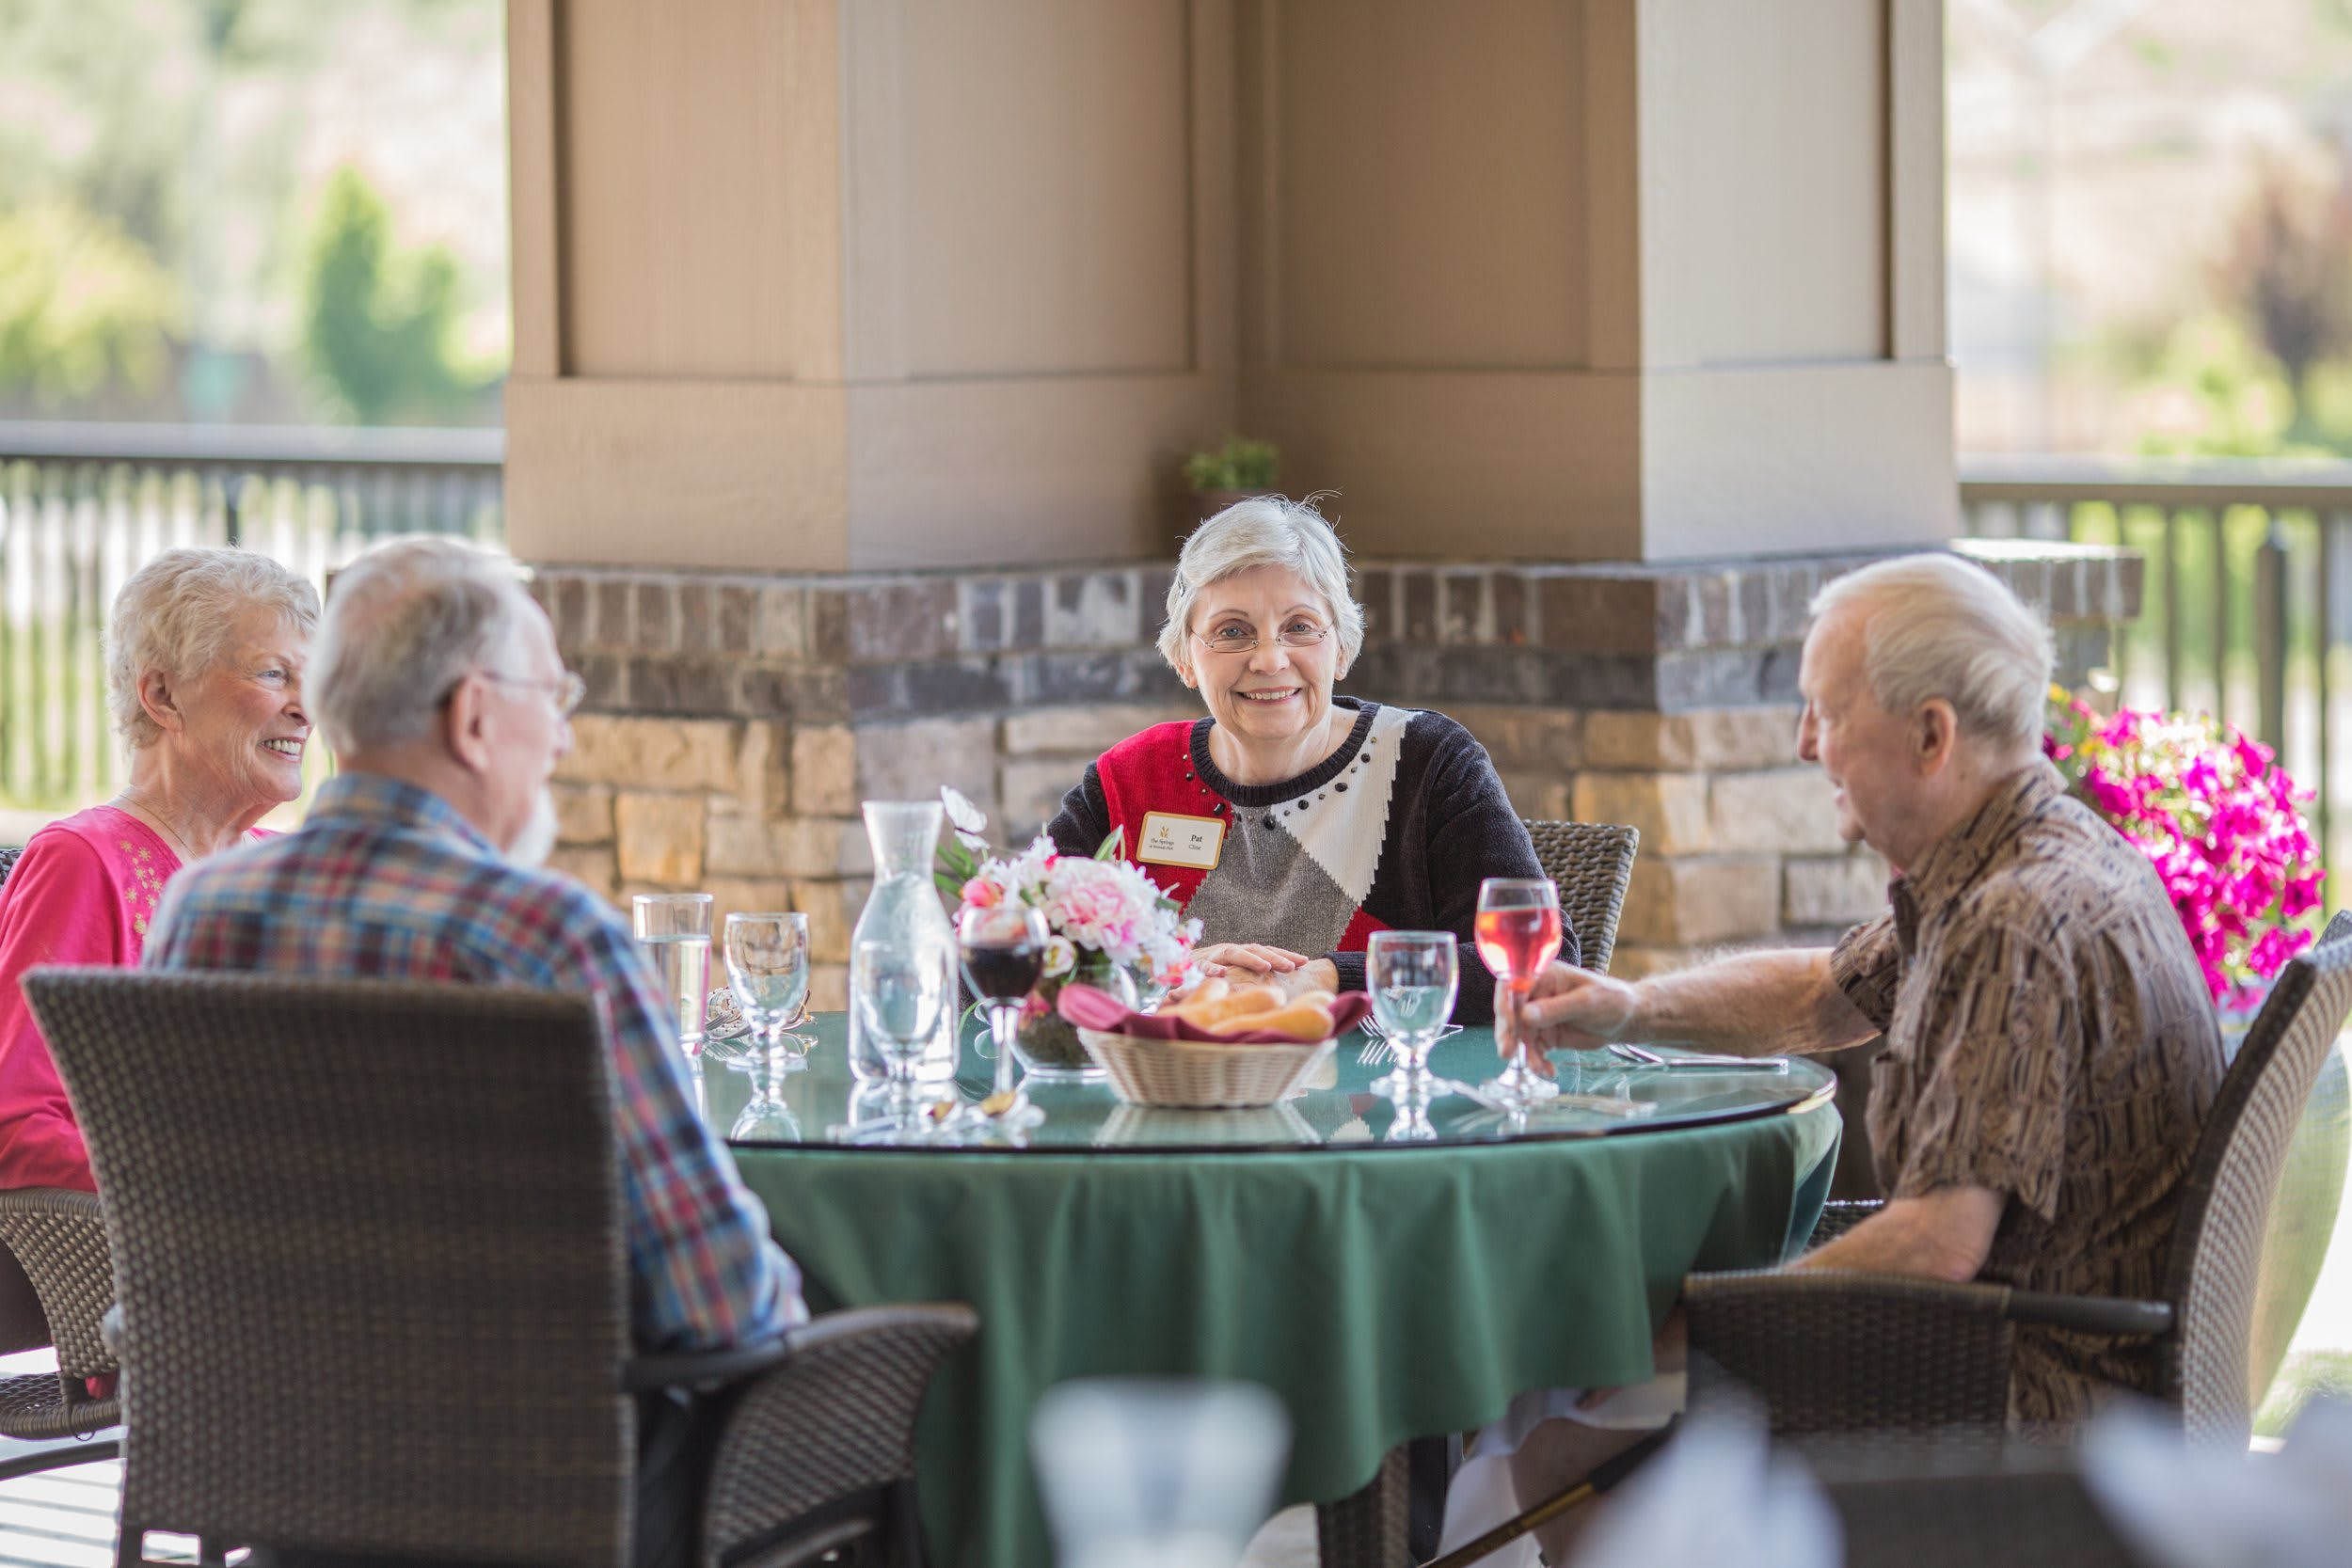 Residents enjoy a meal outside in Medford